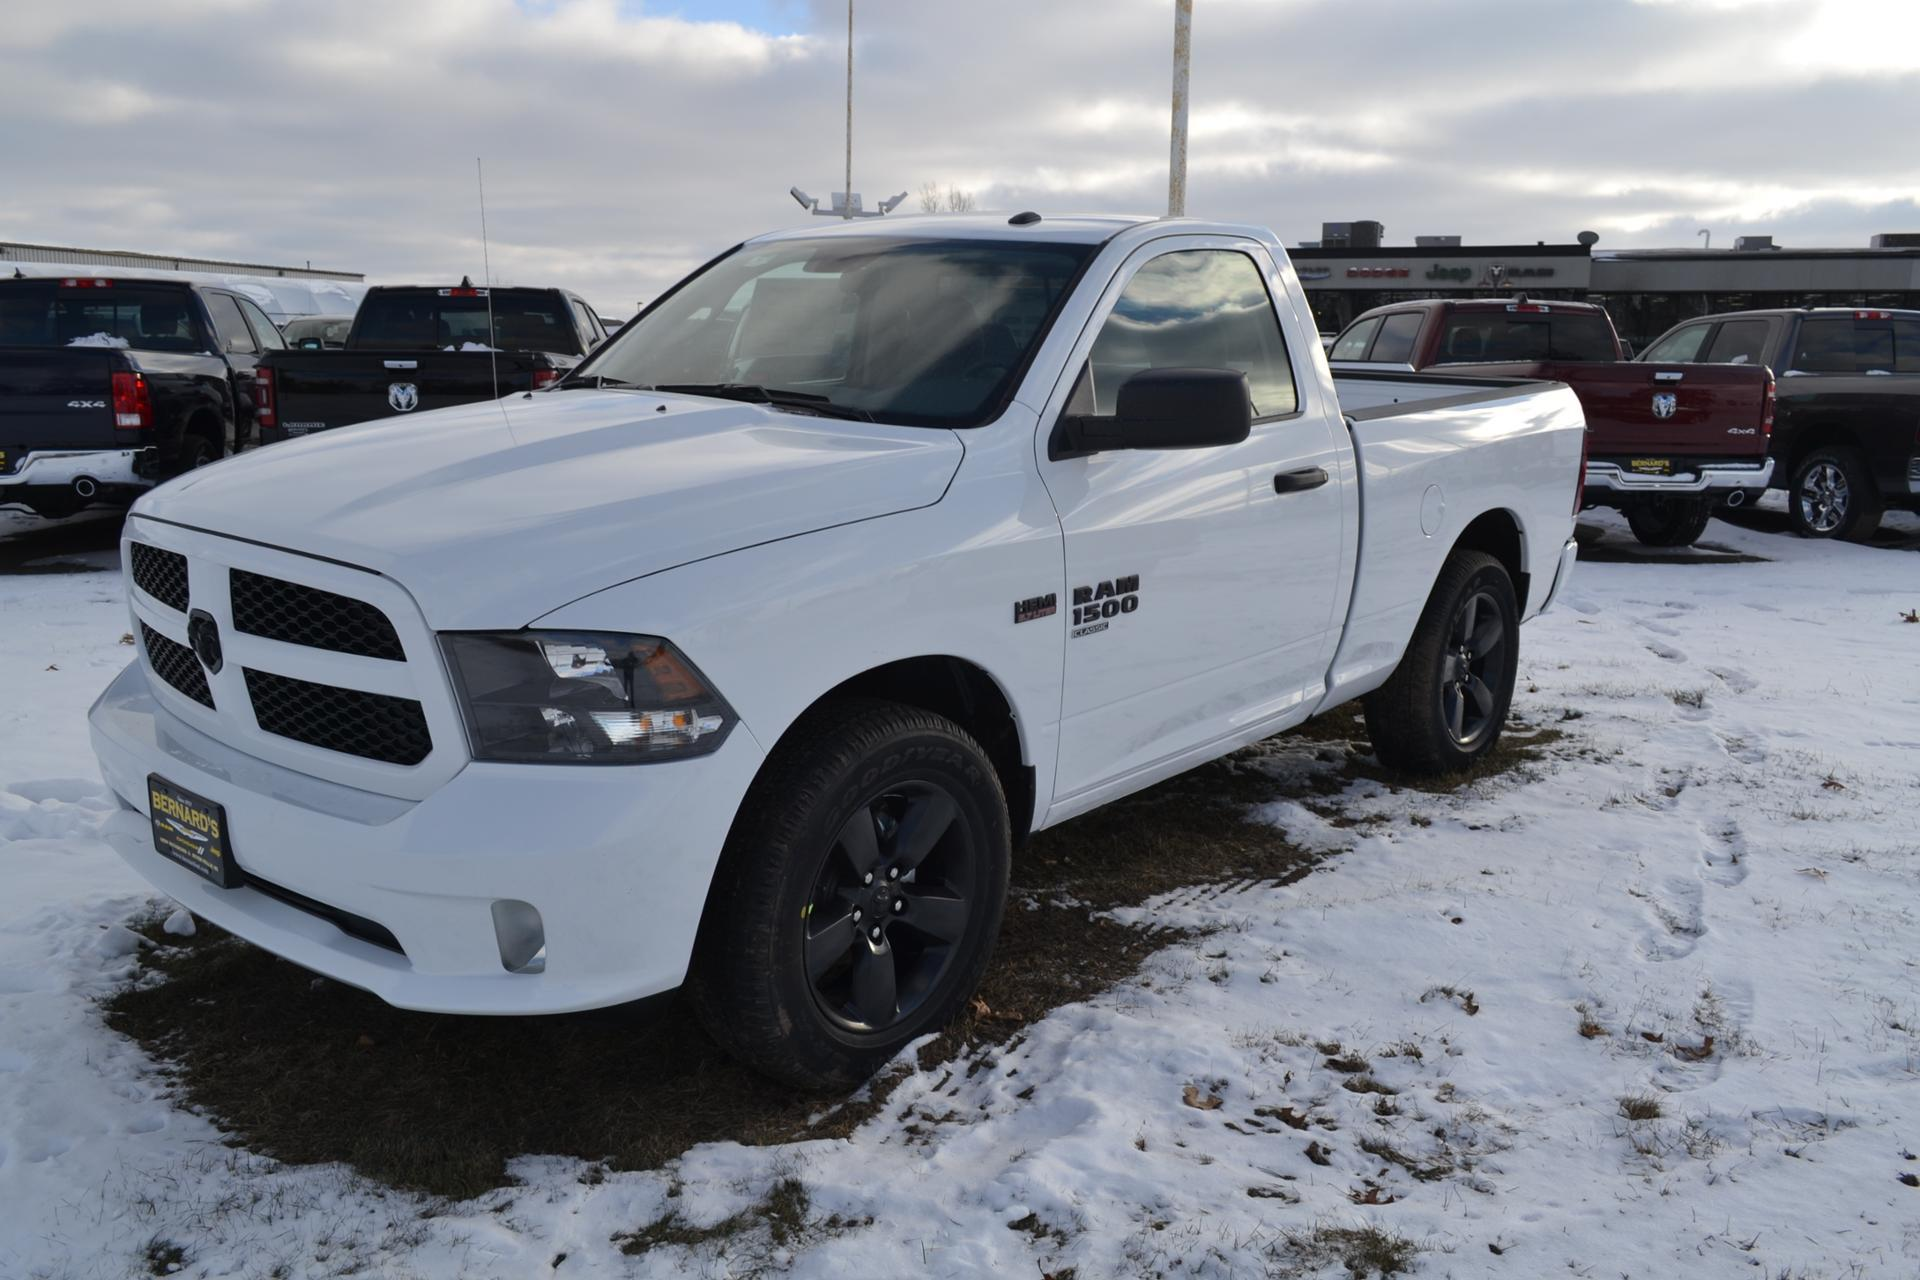 2019 Ram 1500 Regular Cab 4x4,  Pickup #19-446 - photo 1